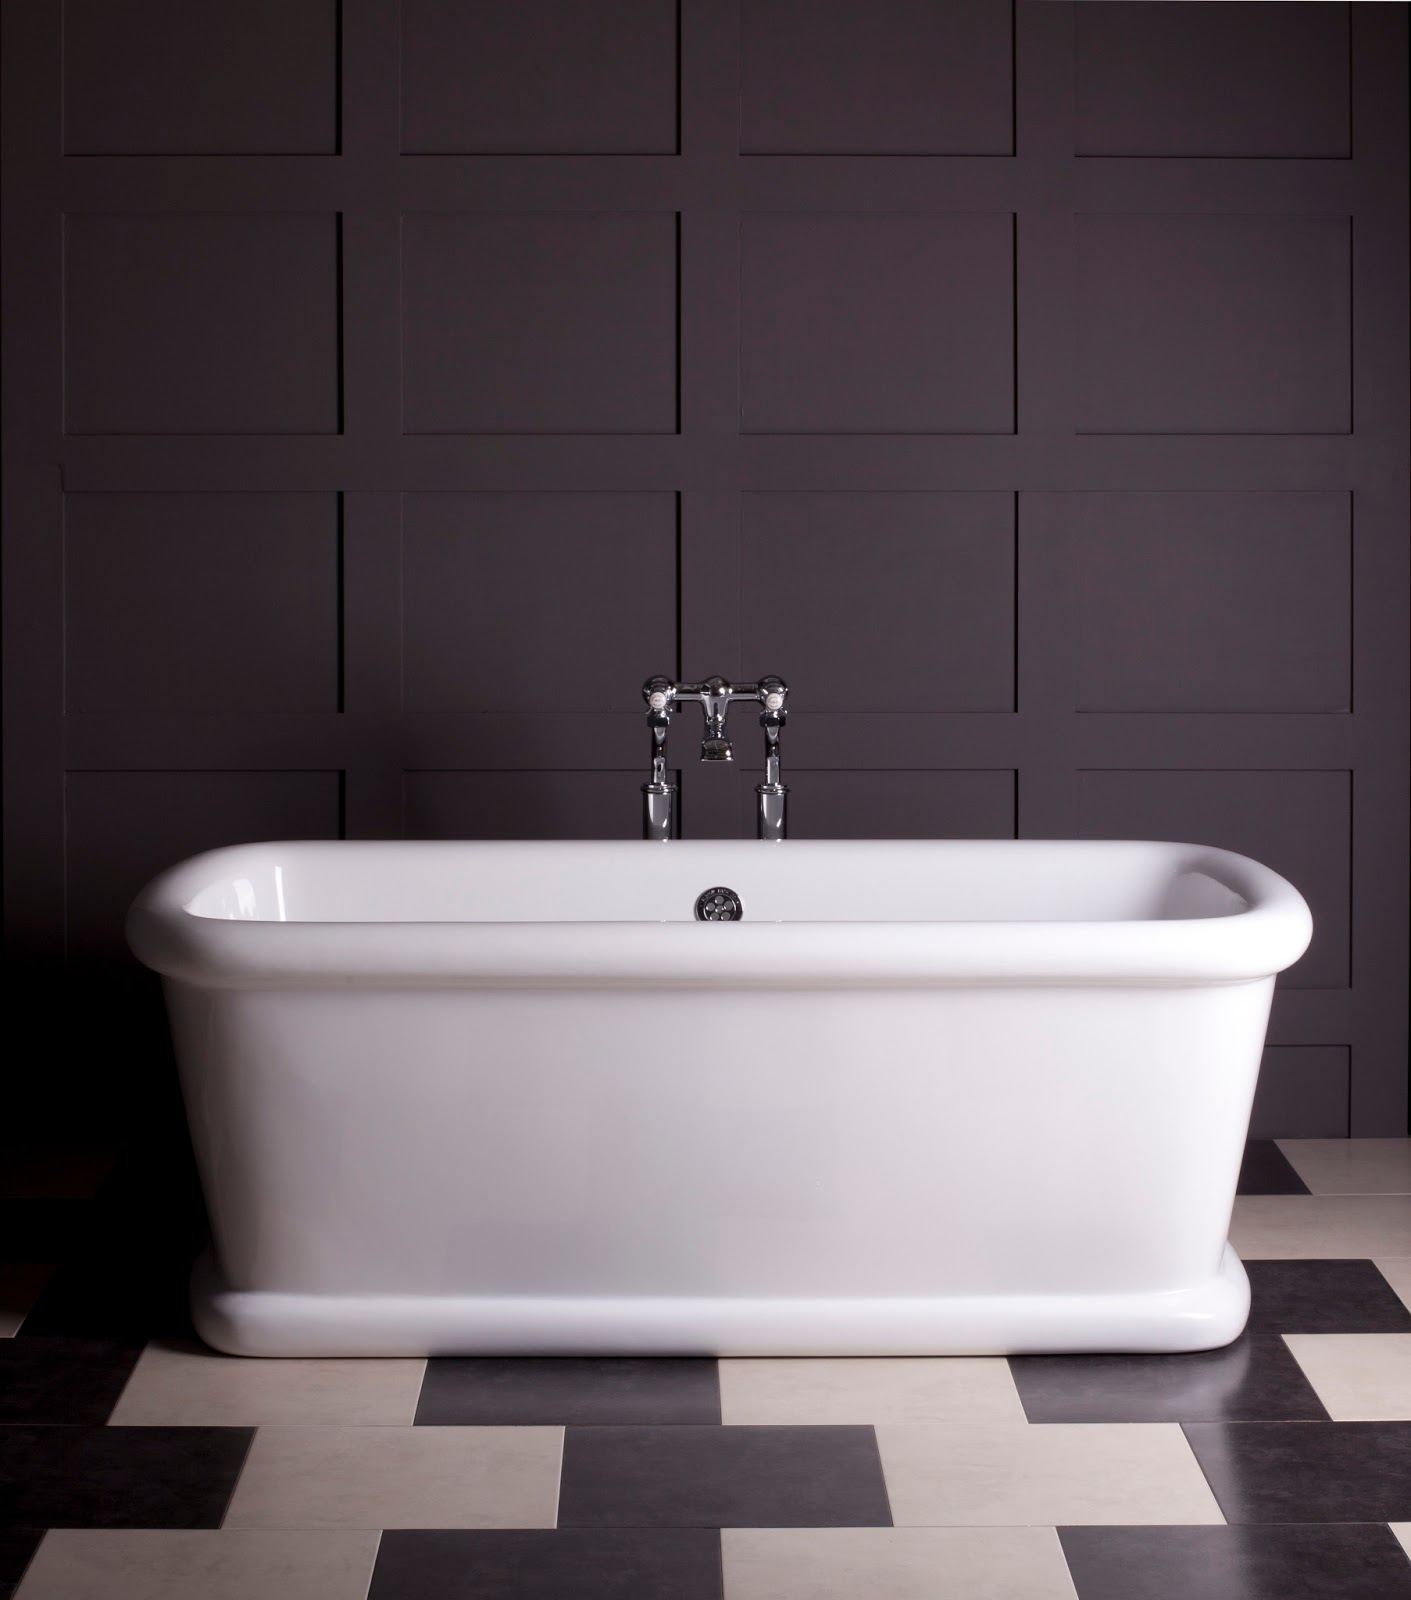 The albion bath company ltd small free standing bath tubs for Small bathroom tub